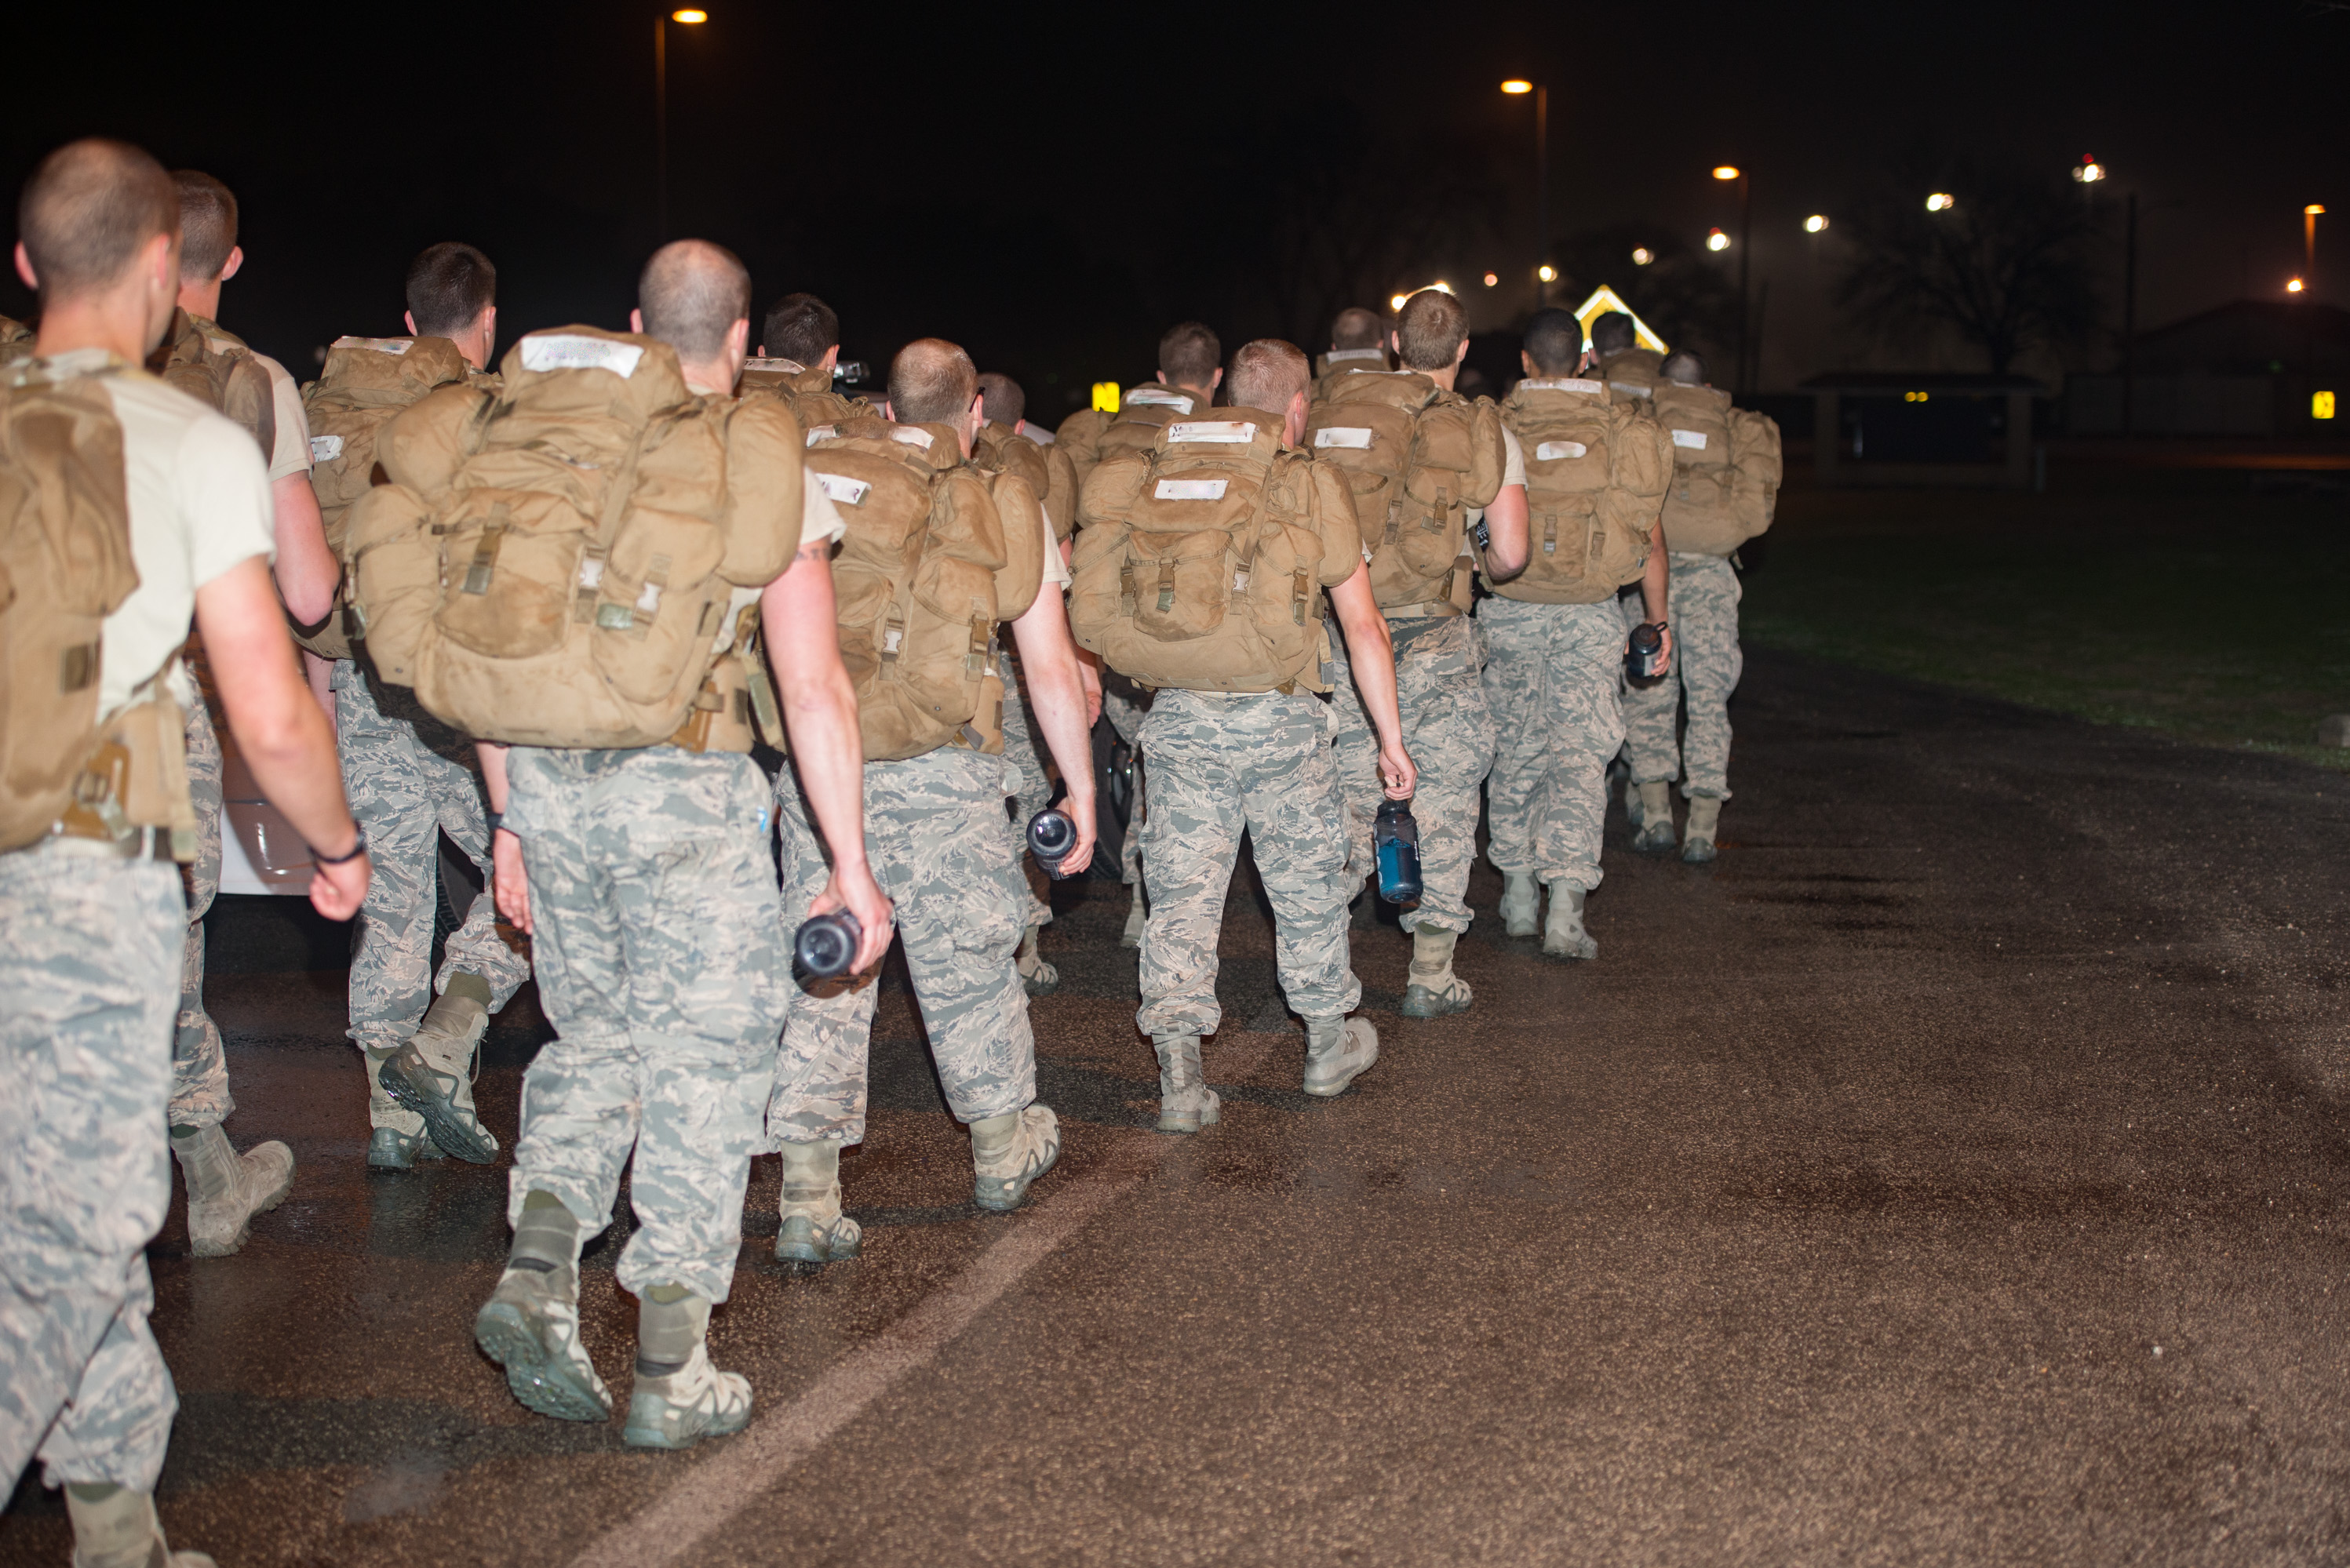 Ruck March Spanning 11 Days 830 Miles Honors Fallen